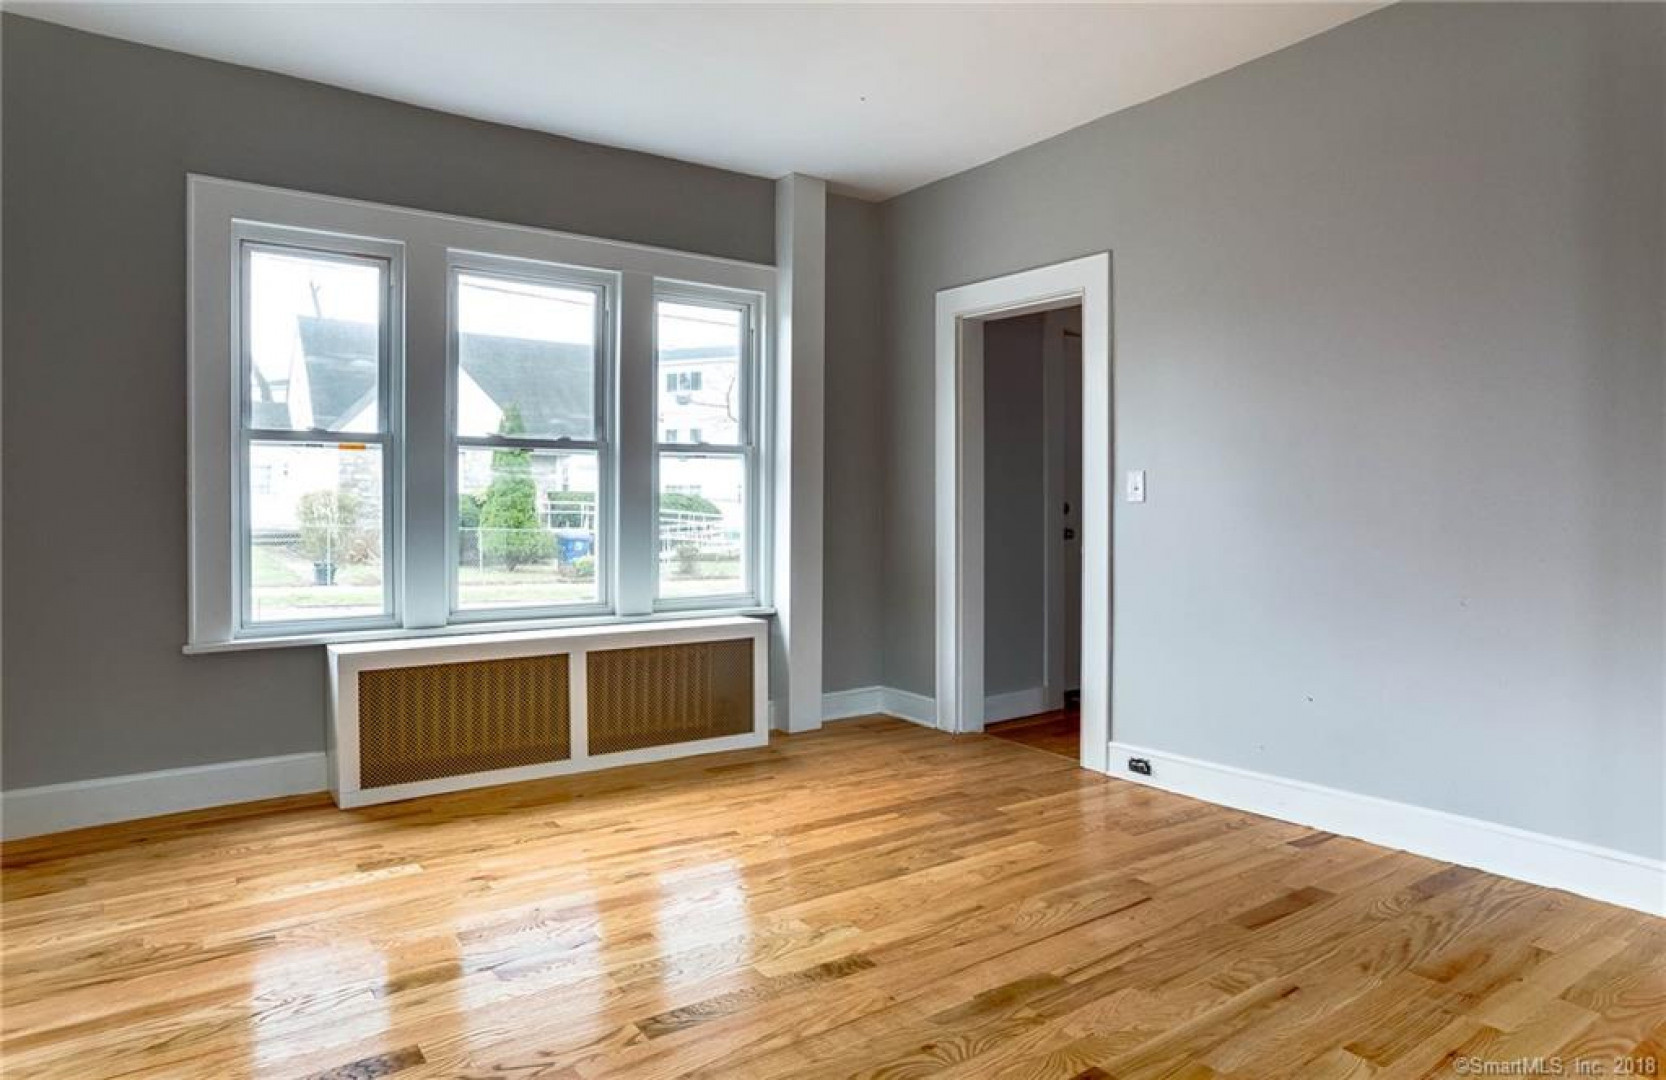 Hardwood Flooring Bridgeport Ct Of 330 French Street Bridgeport Ct for Sale William Pitt sothebys Throughout 330 French Street Bridgeport Ct for Sale William Pitt sothebys Realty